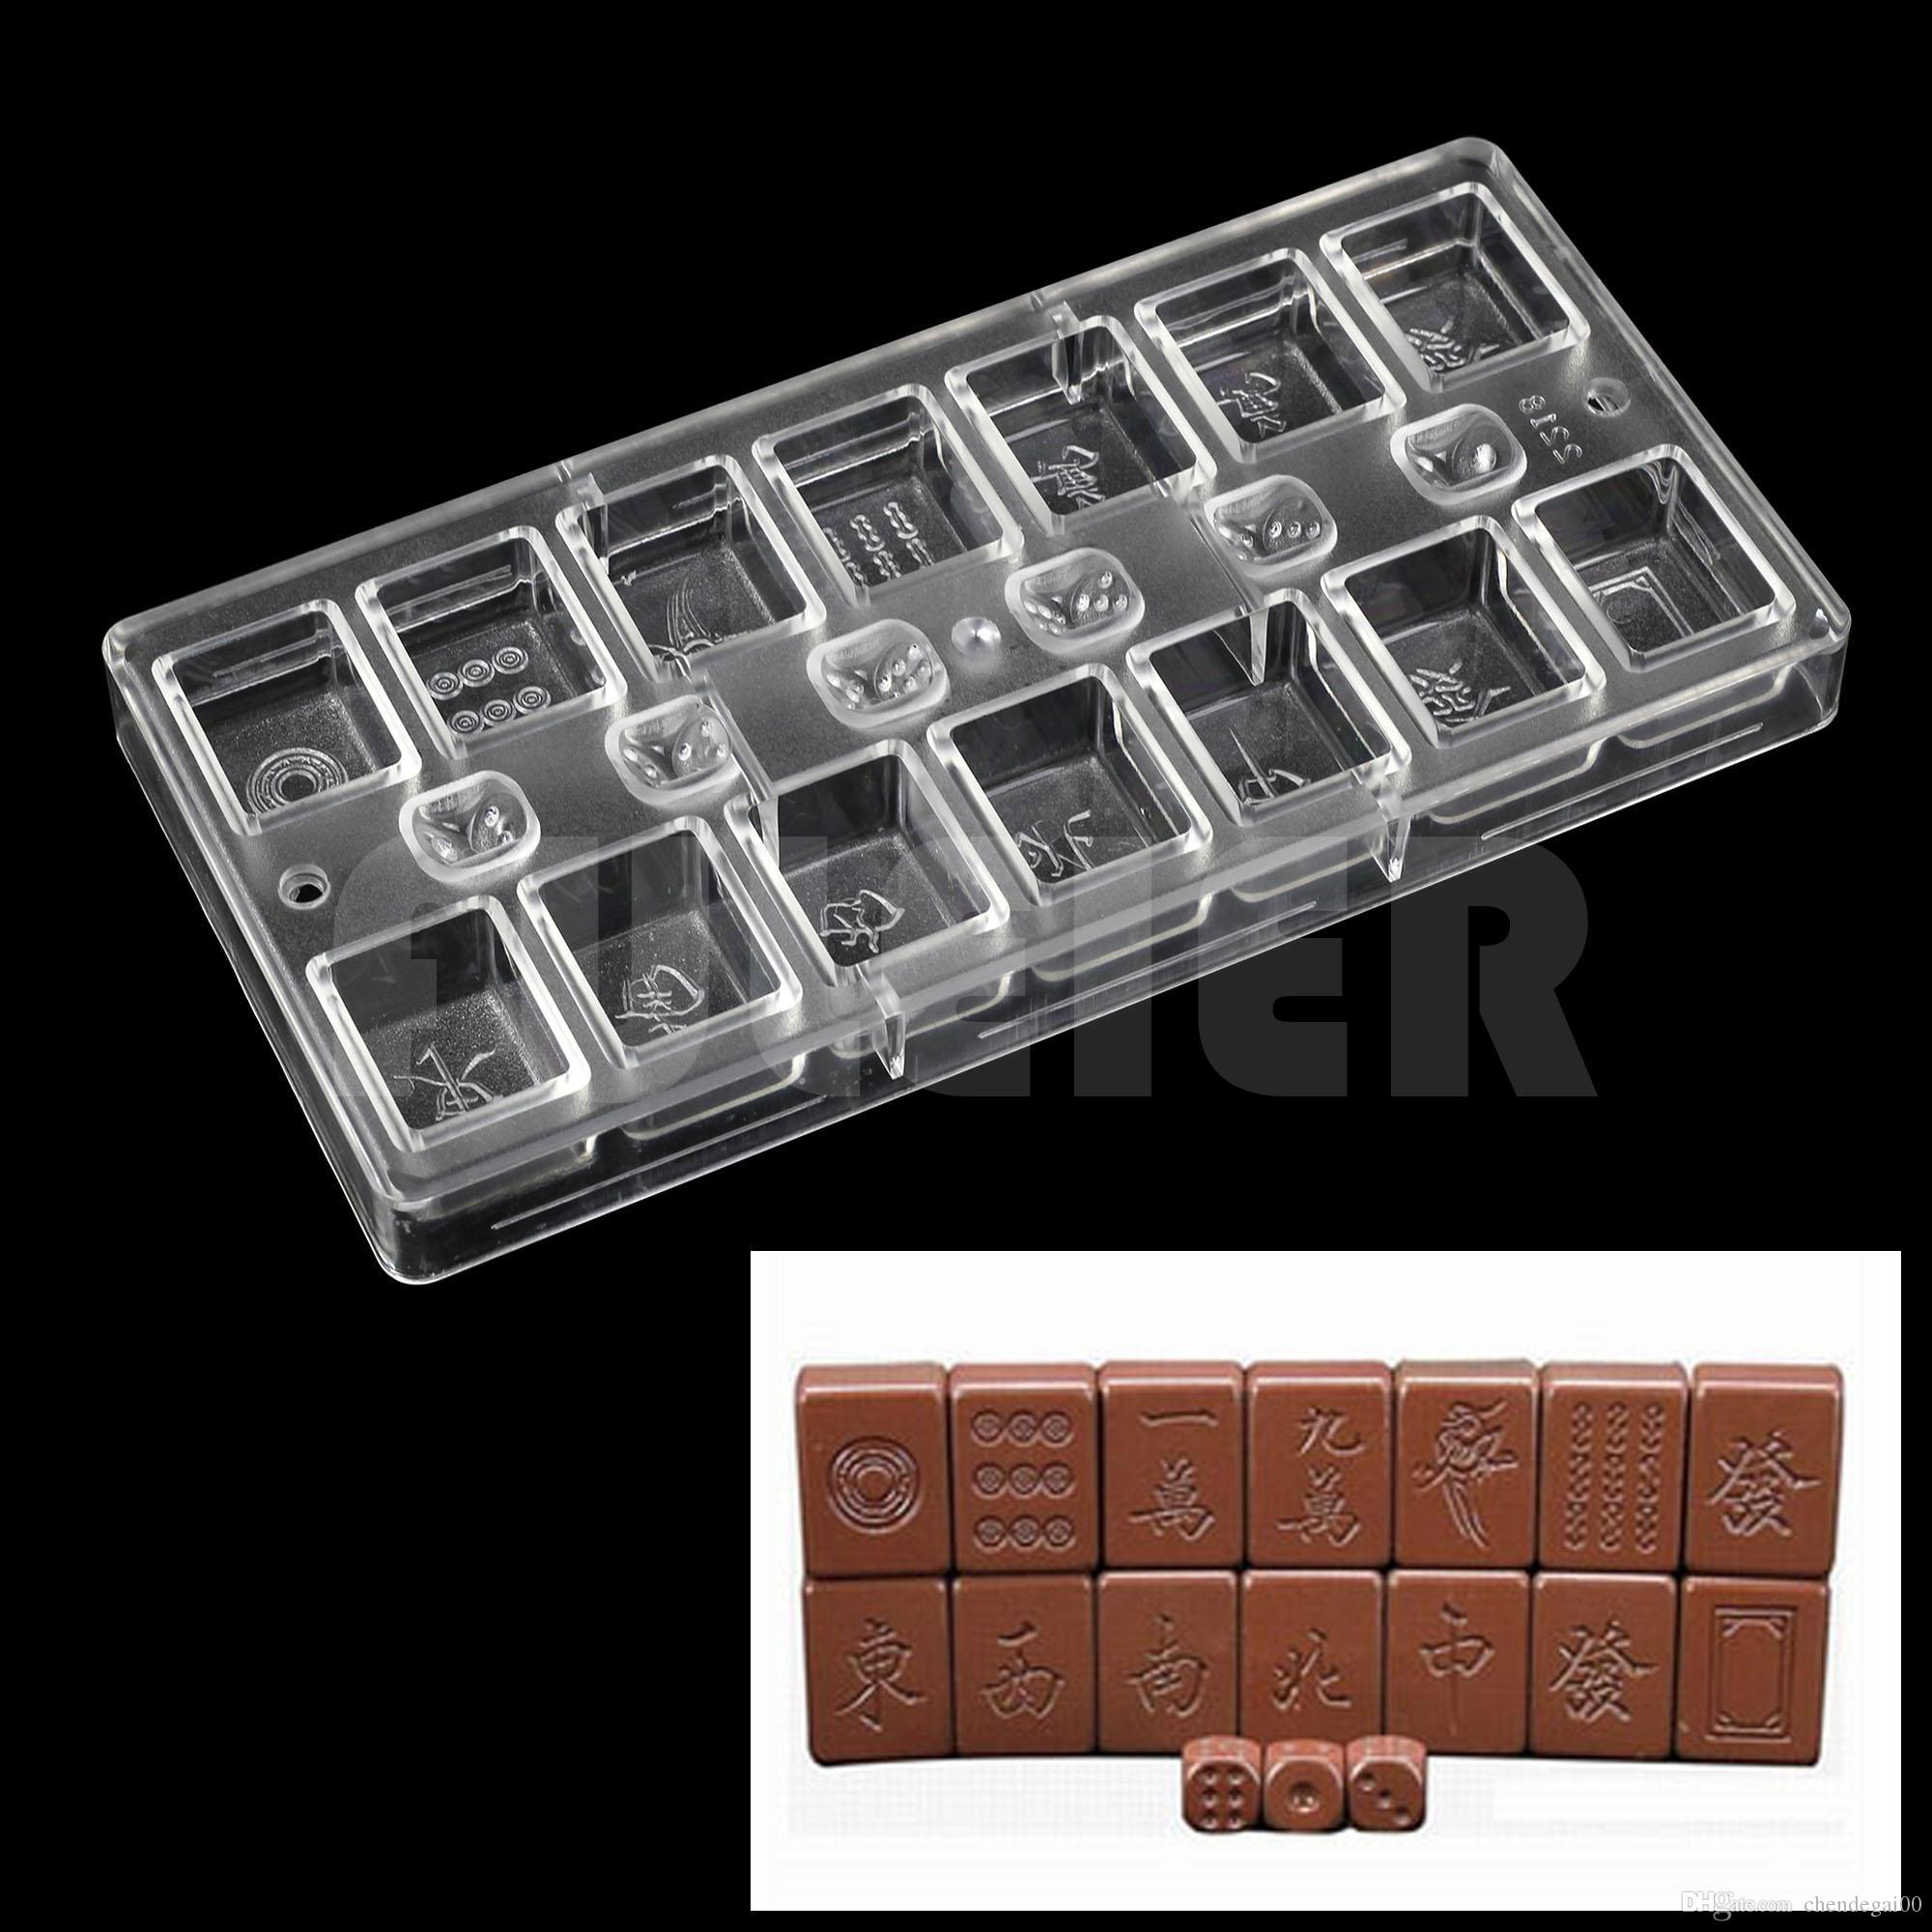 2018 Pastry Tools Polycarbonate Chocolate Mold , Chinese Style Table Casual  Games Mahjong With Dice Shaped Making Chocolate Moulds From Chendegai00, ...